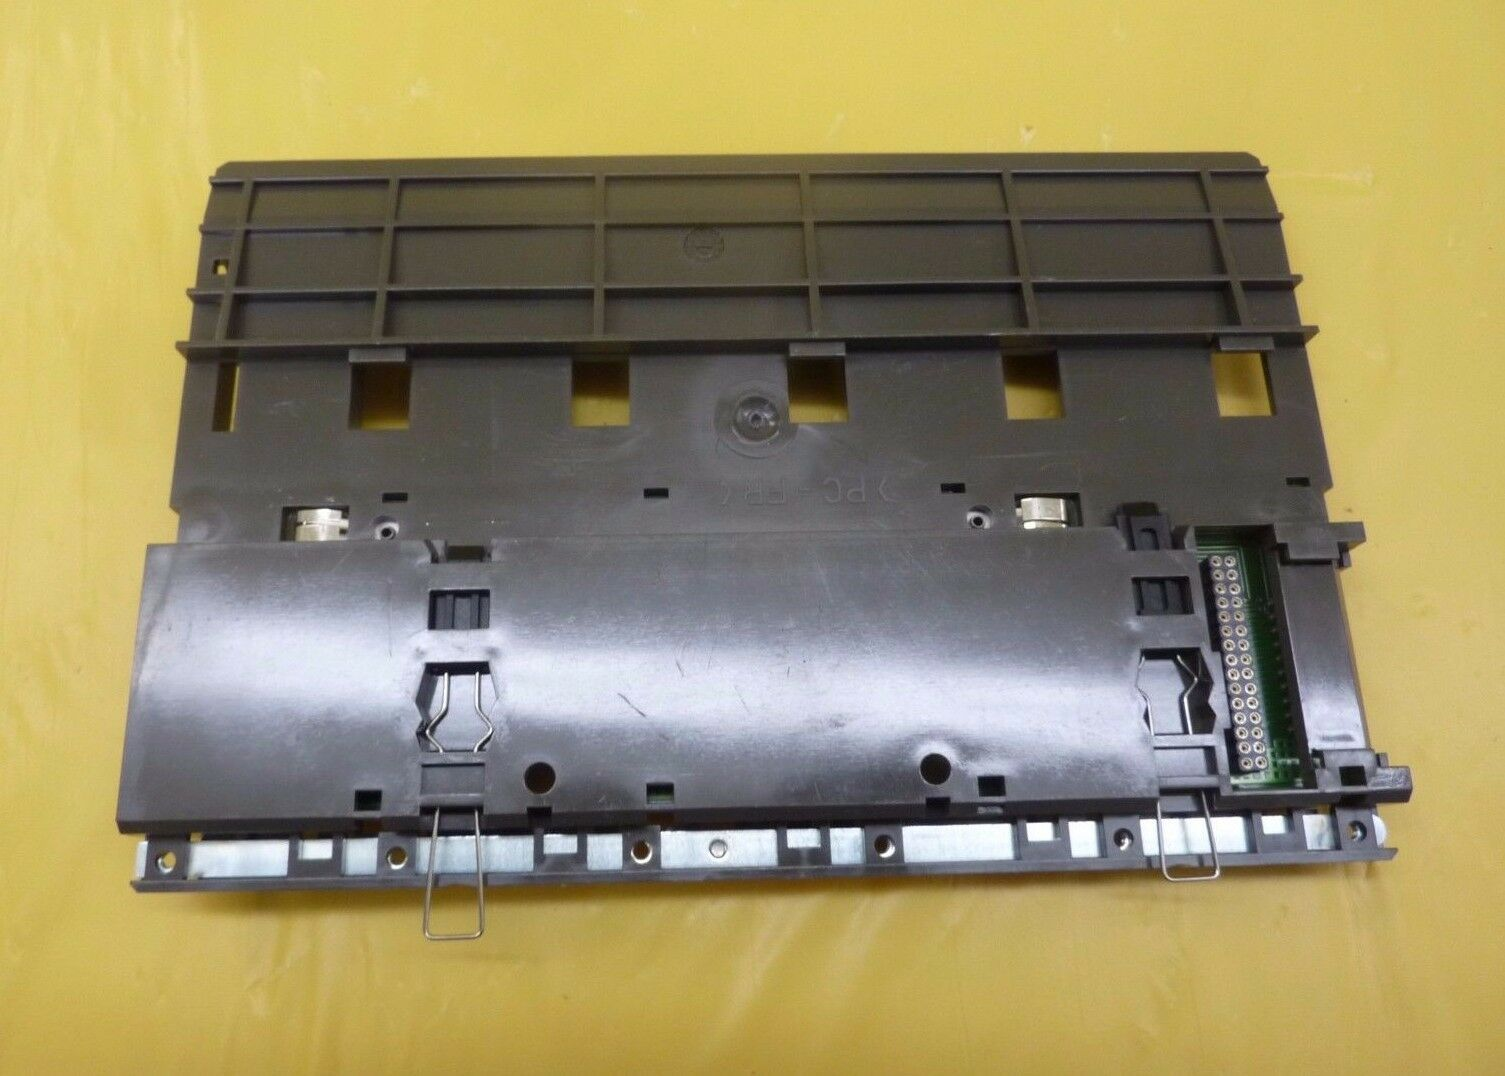 AEG DAP 218/AS-BDAP-218 Modicon PLC Secondary Rack DAP 208/AS-BDAP-208 Used